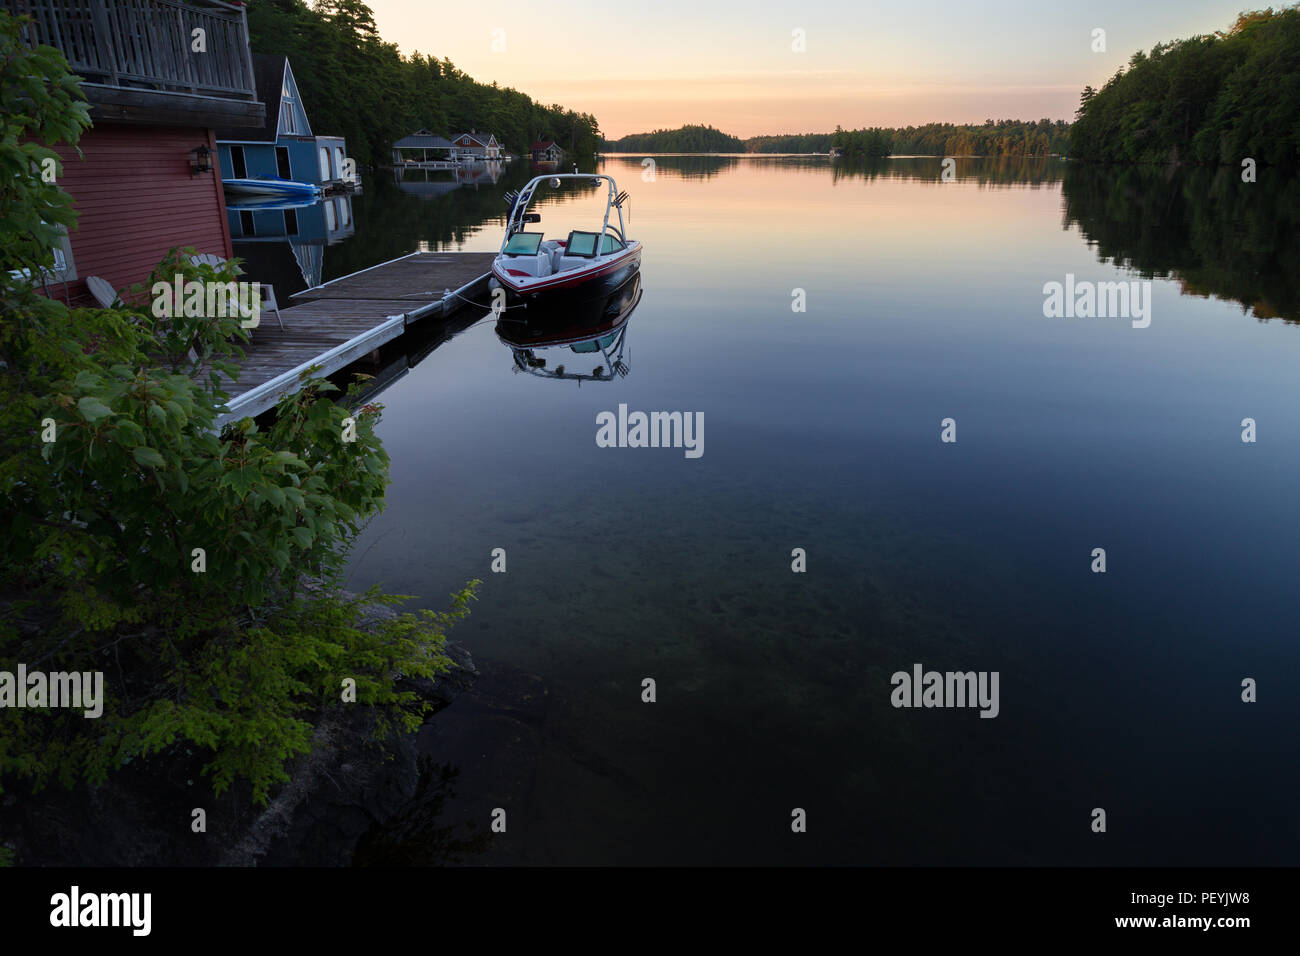 A boathouse with a wakeboard boat parked at it on Lake Joseph at dawn. - Stock Image